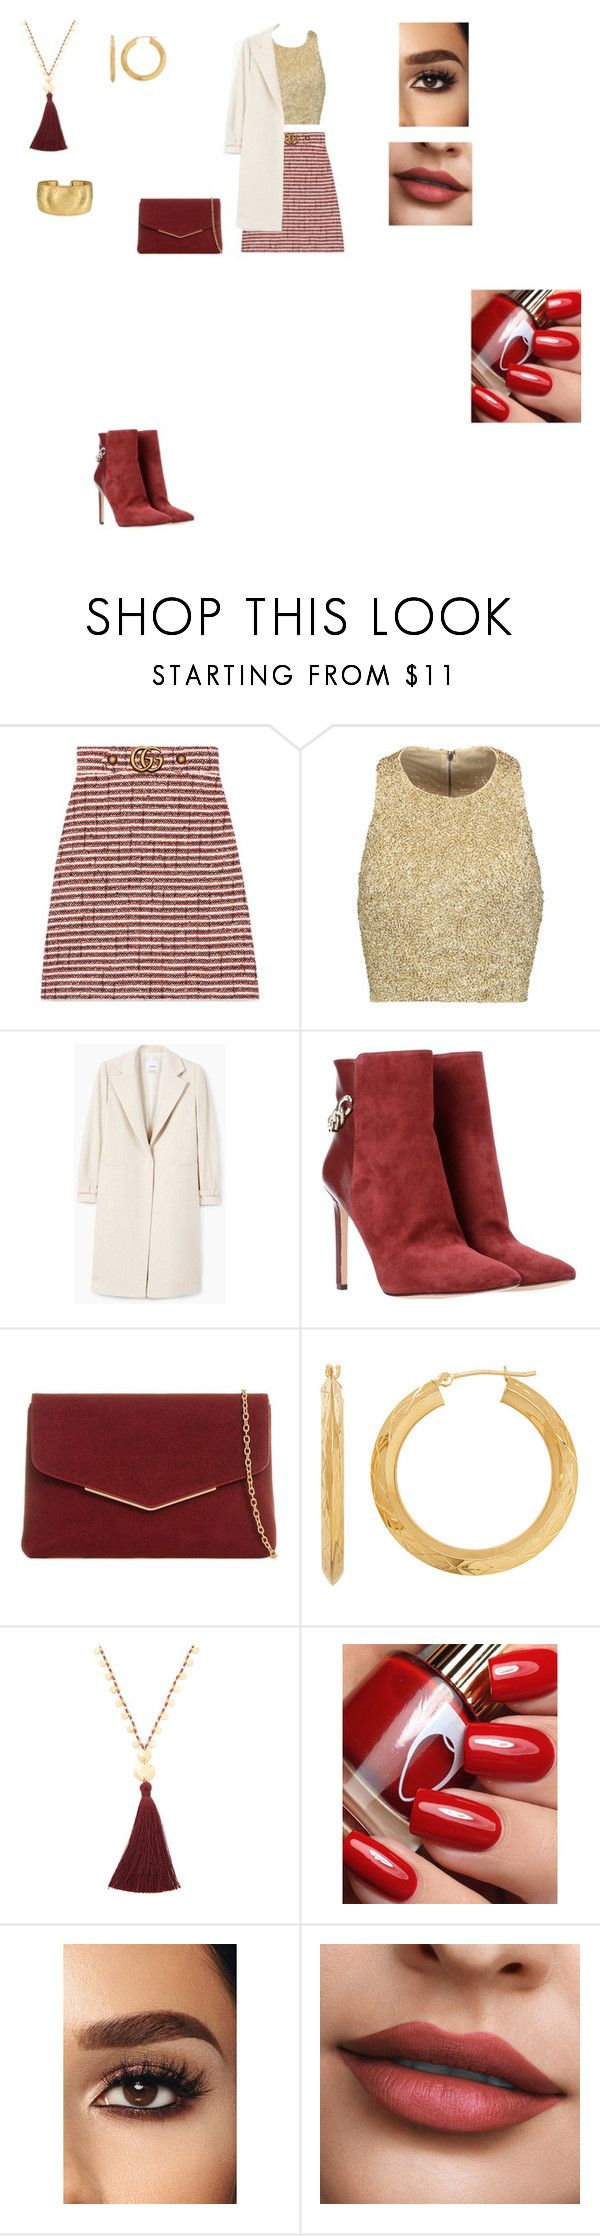 """NIght out Outfit"" by helena94-1 on Polyvore featuring Gucci, Alice + Olivia, MANGO, Nine West, KoKo Couture, Everlasting Gold, Gorjana and polyvorefashion"